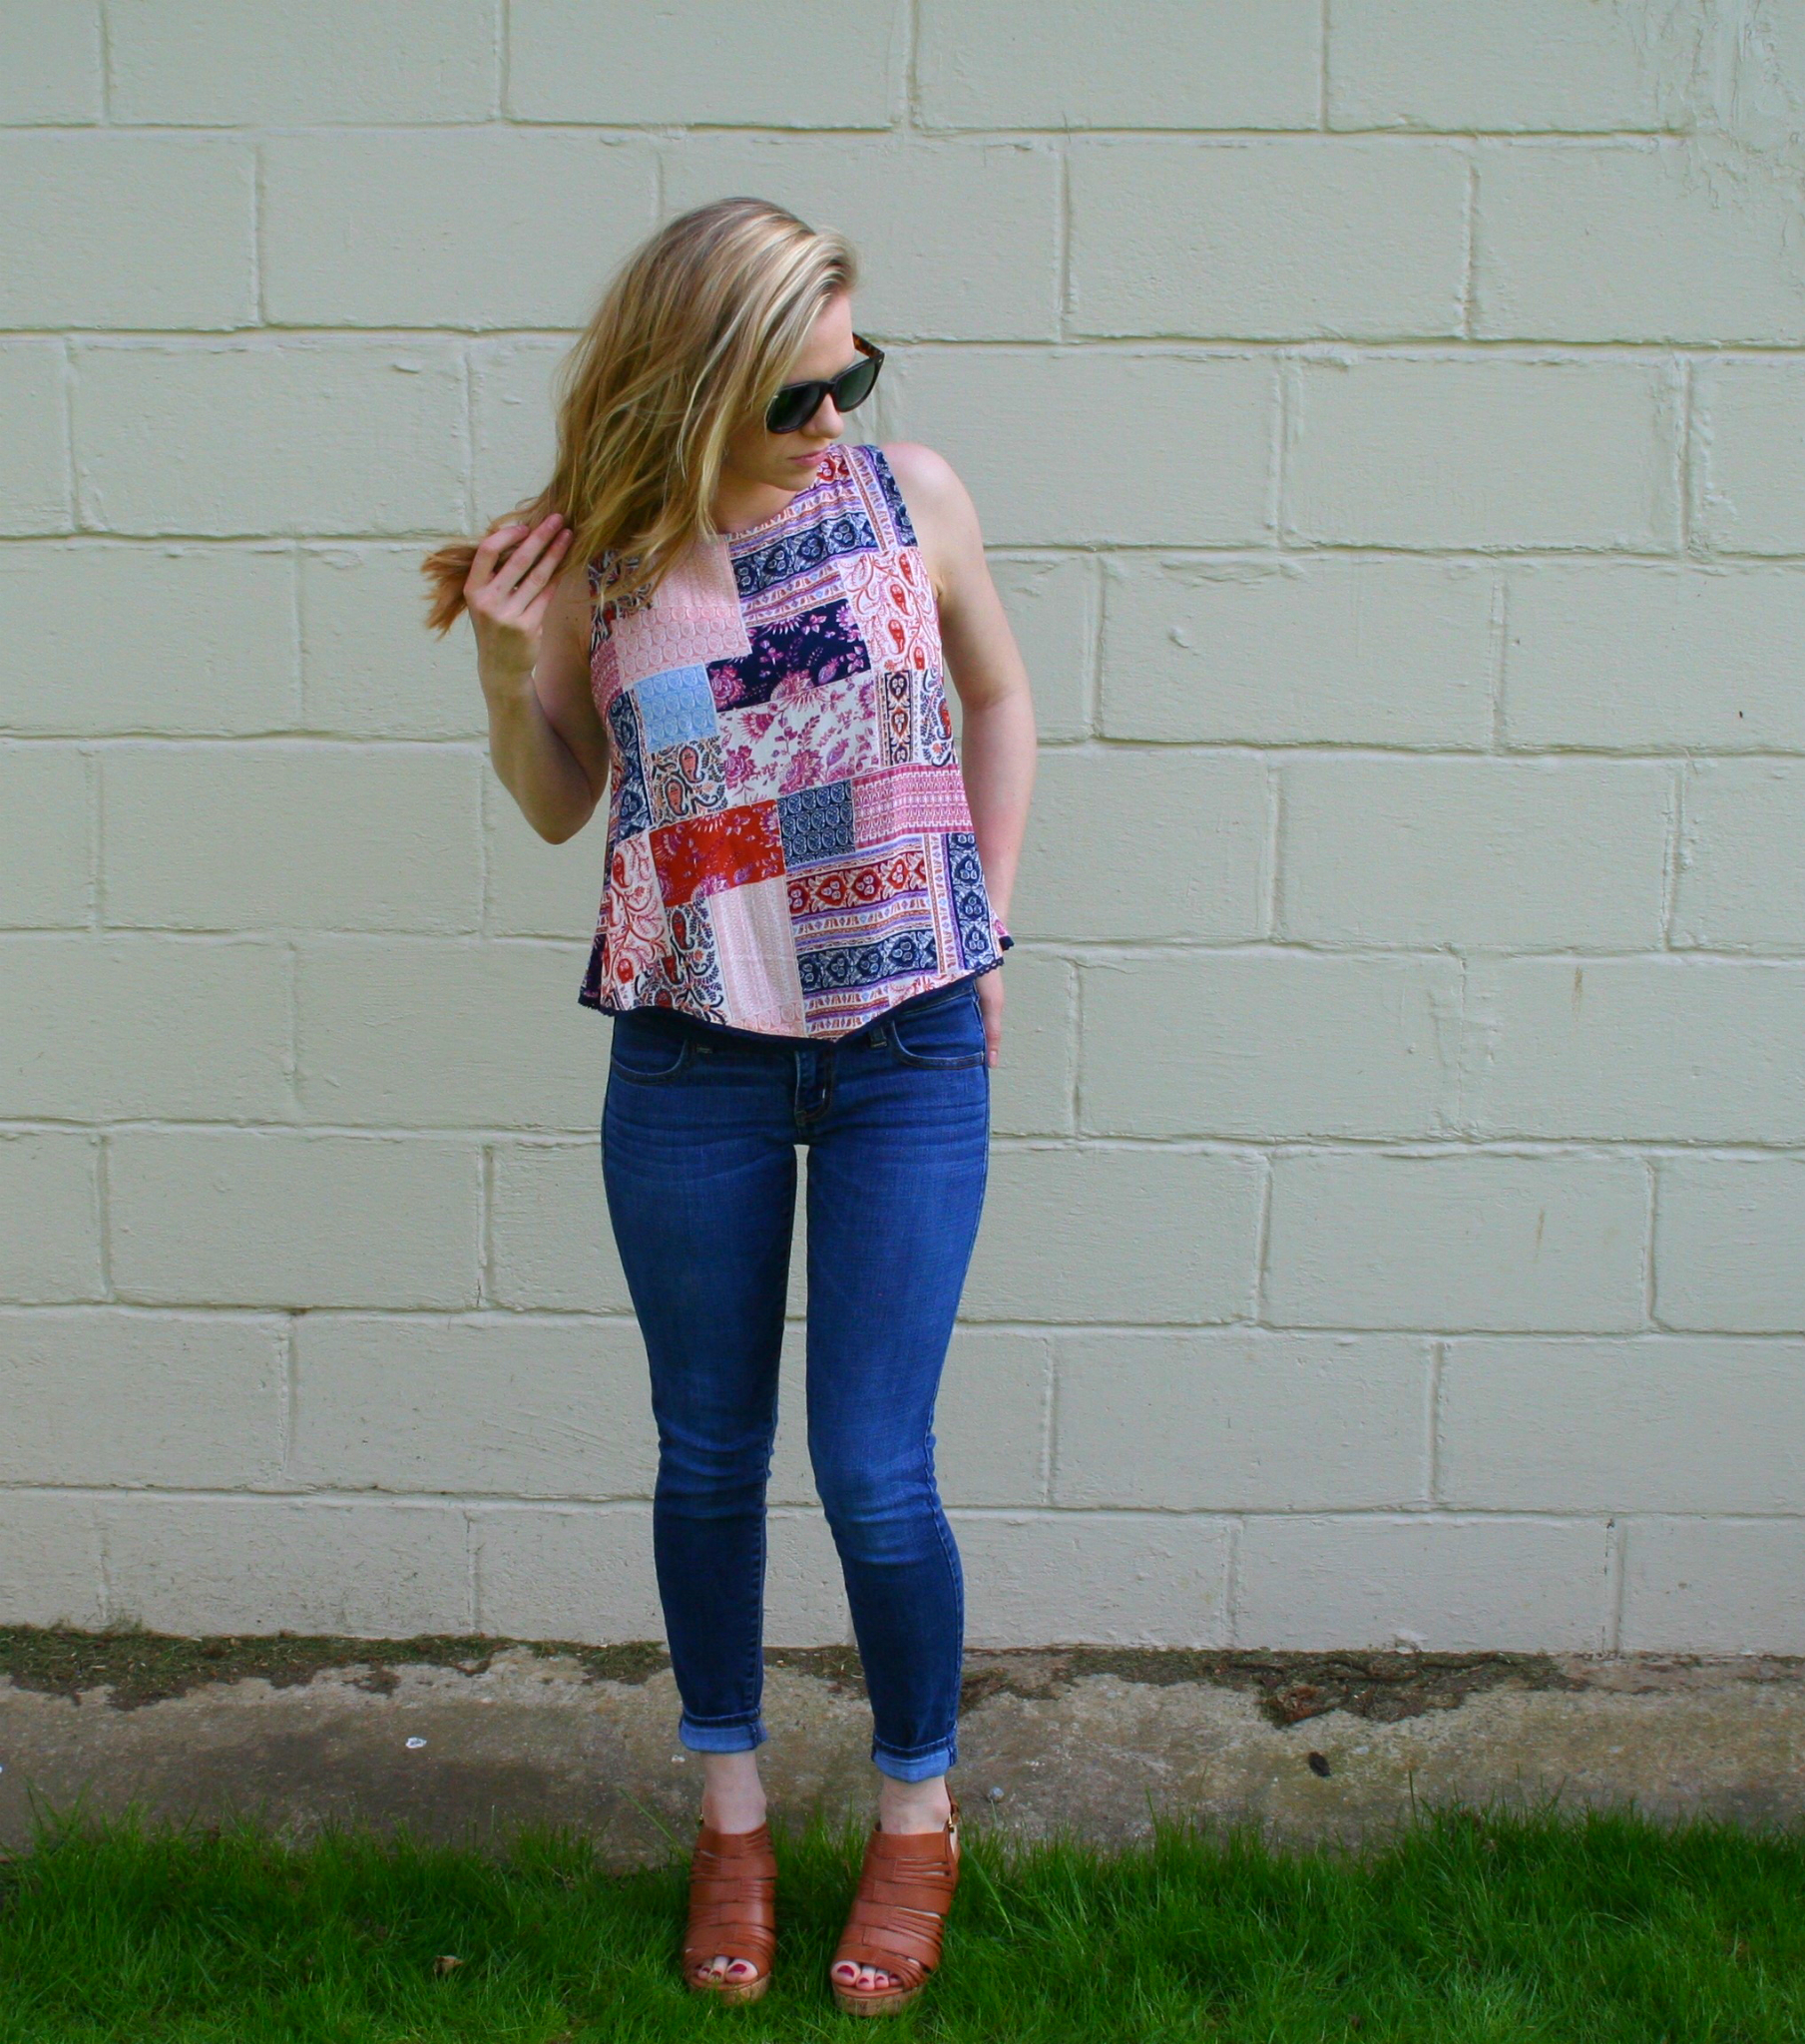 Patchwork shirt, dark jeans and heels